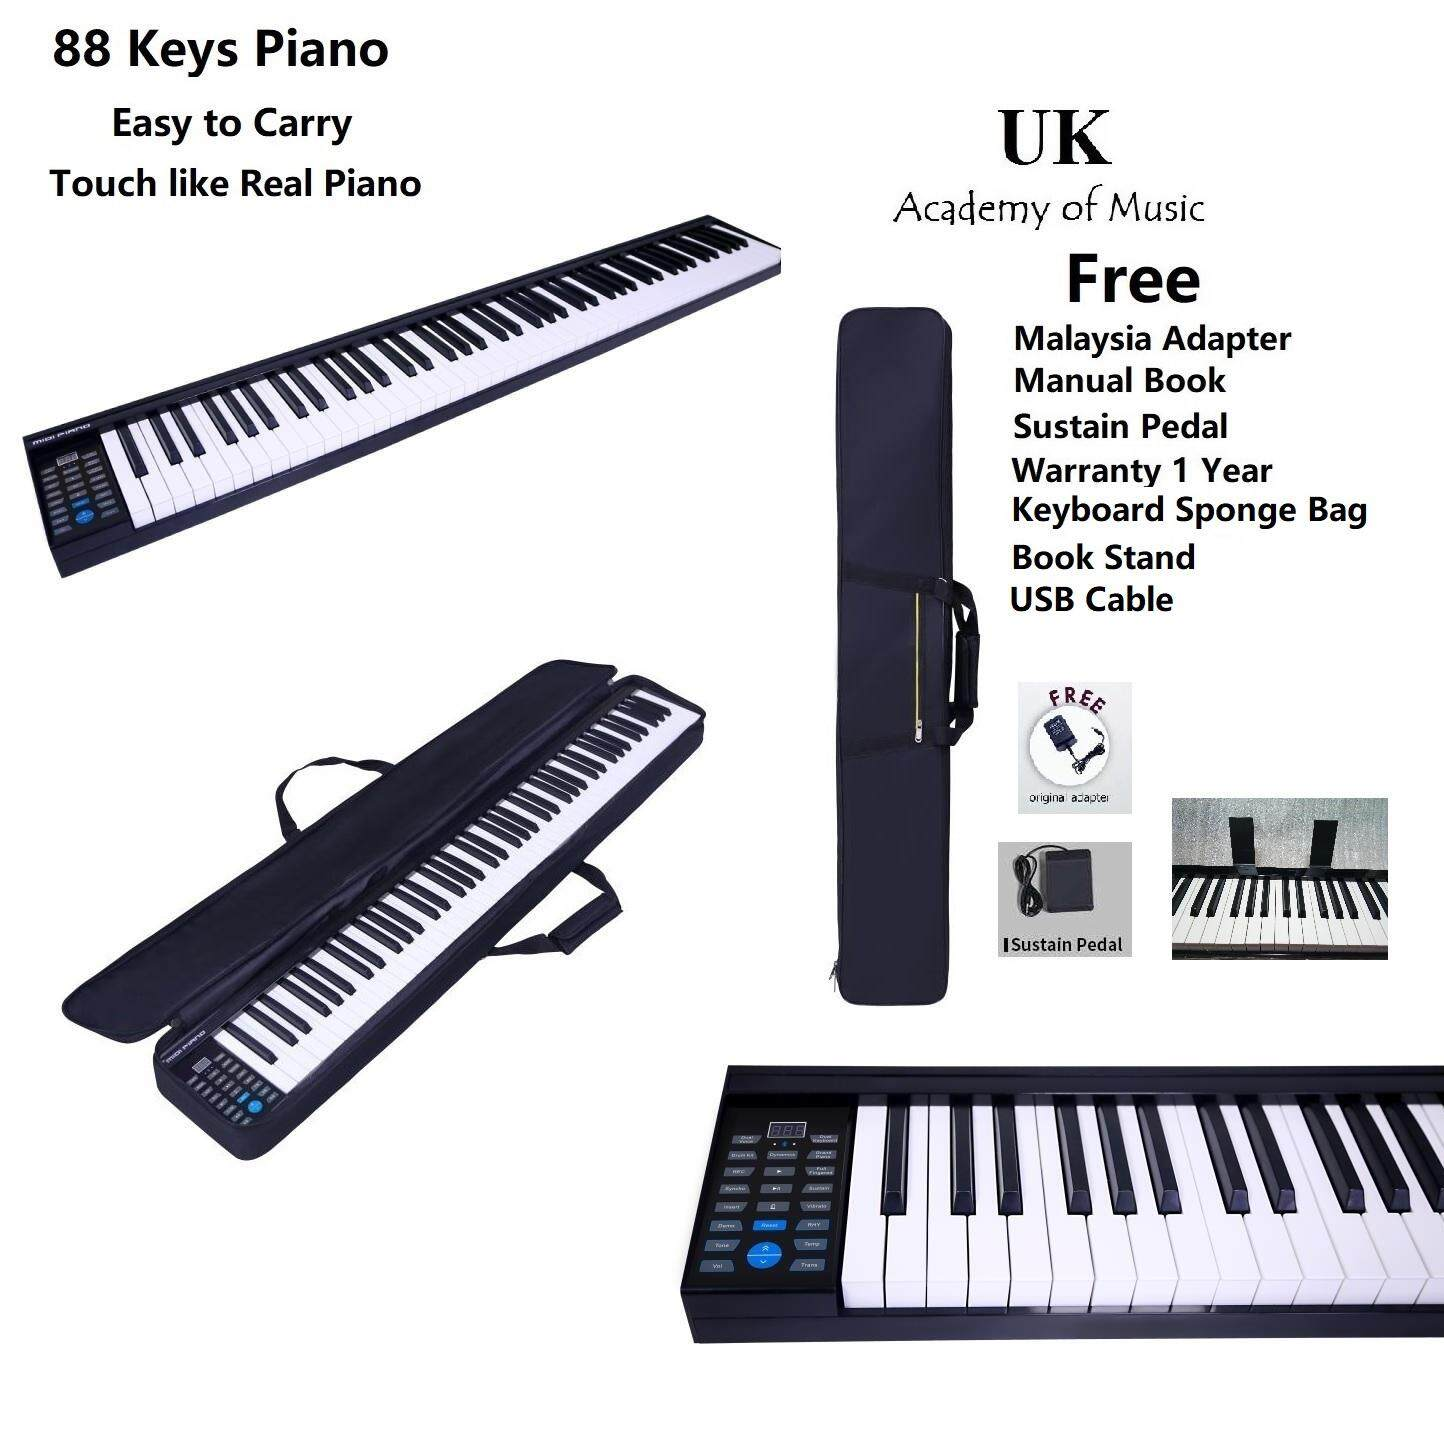 [Rechargeable] Portable 88 Keys Traveler Electronic Piano MIDI Keyboard  with Book Stand